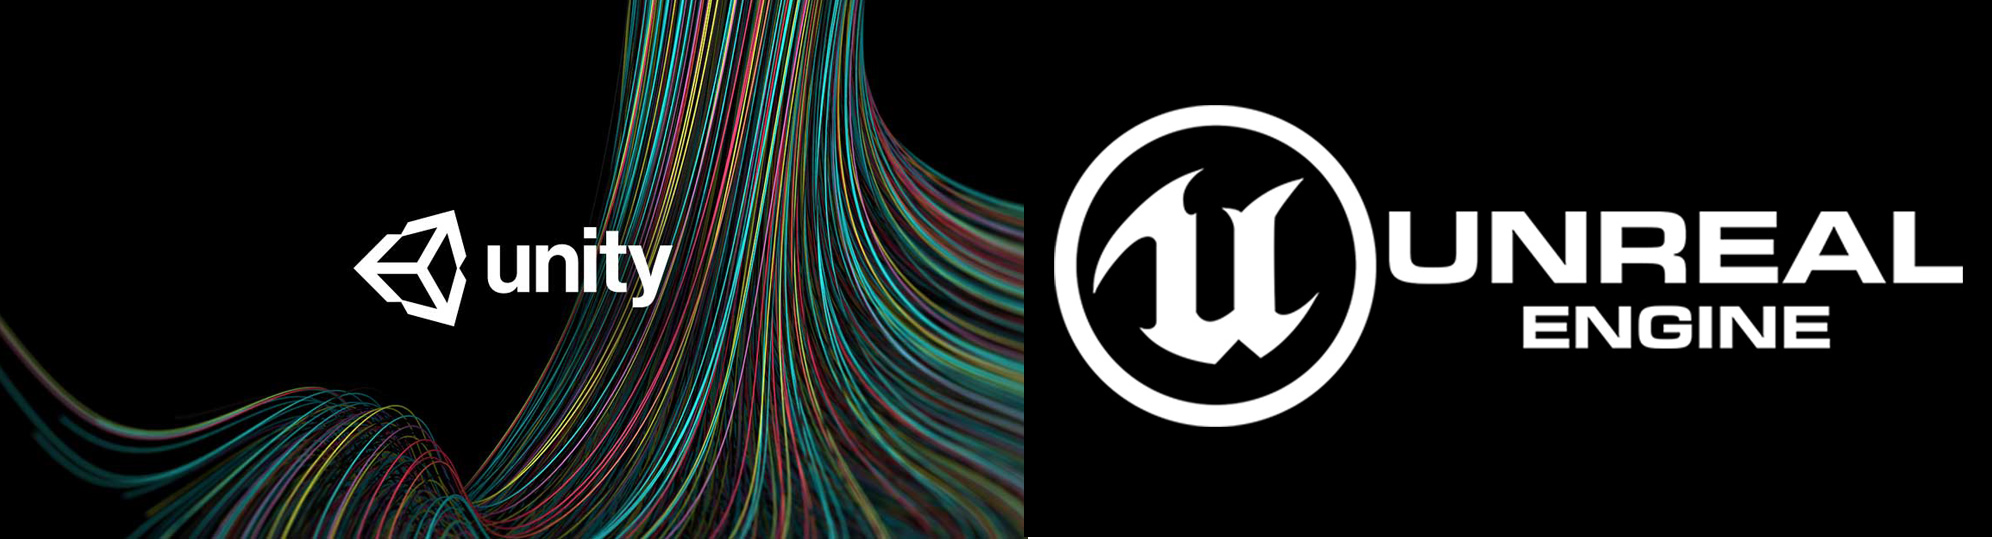 Unity vs Unreal Engine: which game engine is for you? | Creative Bloq